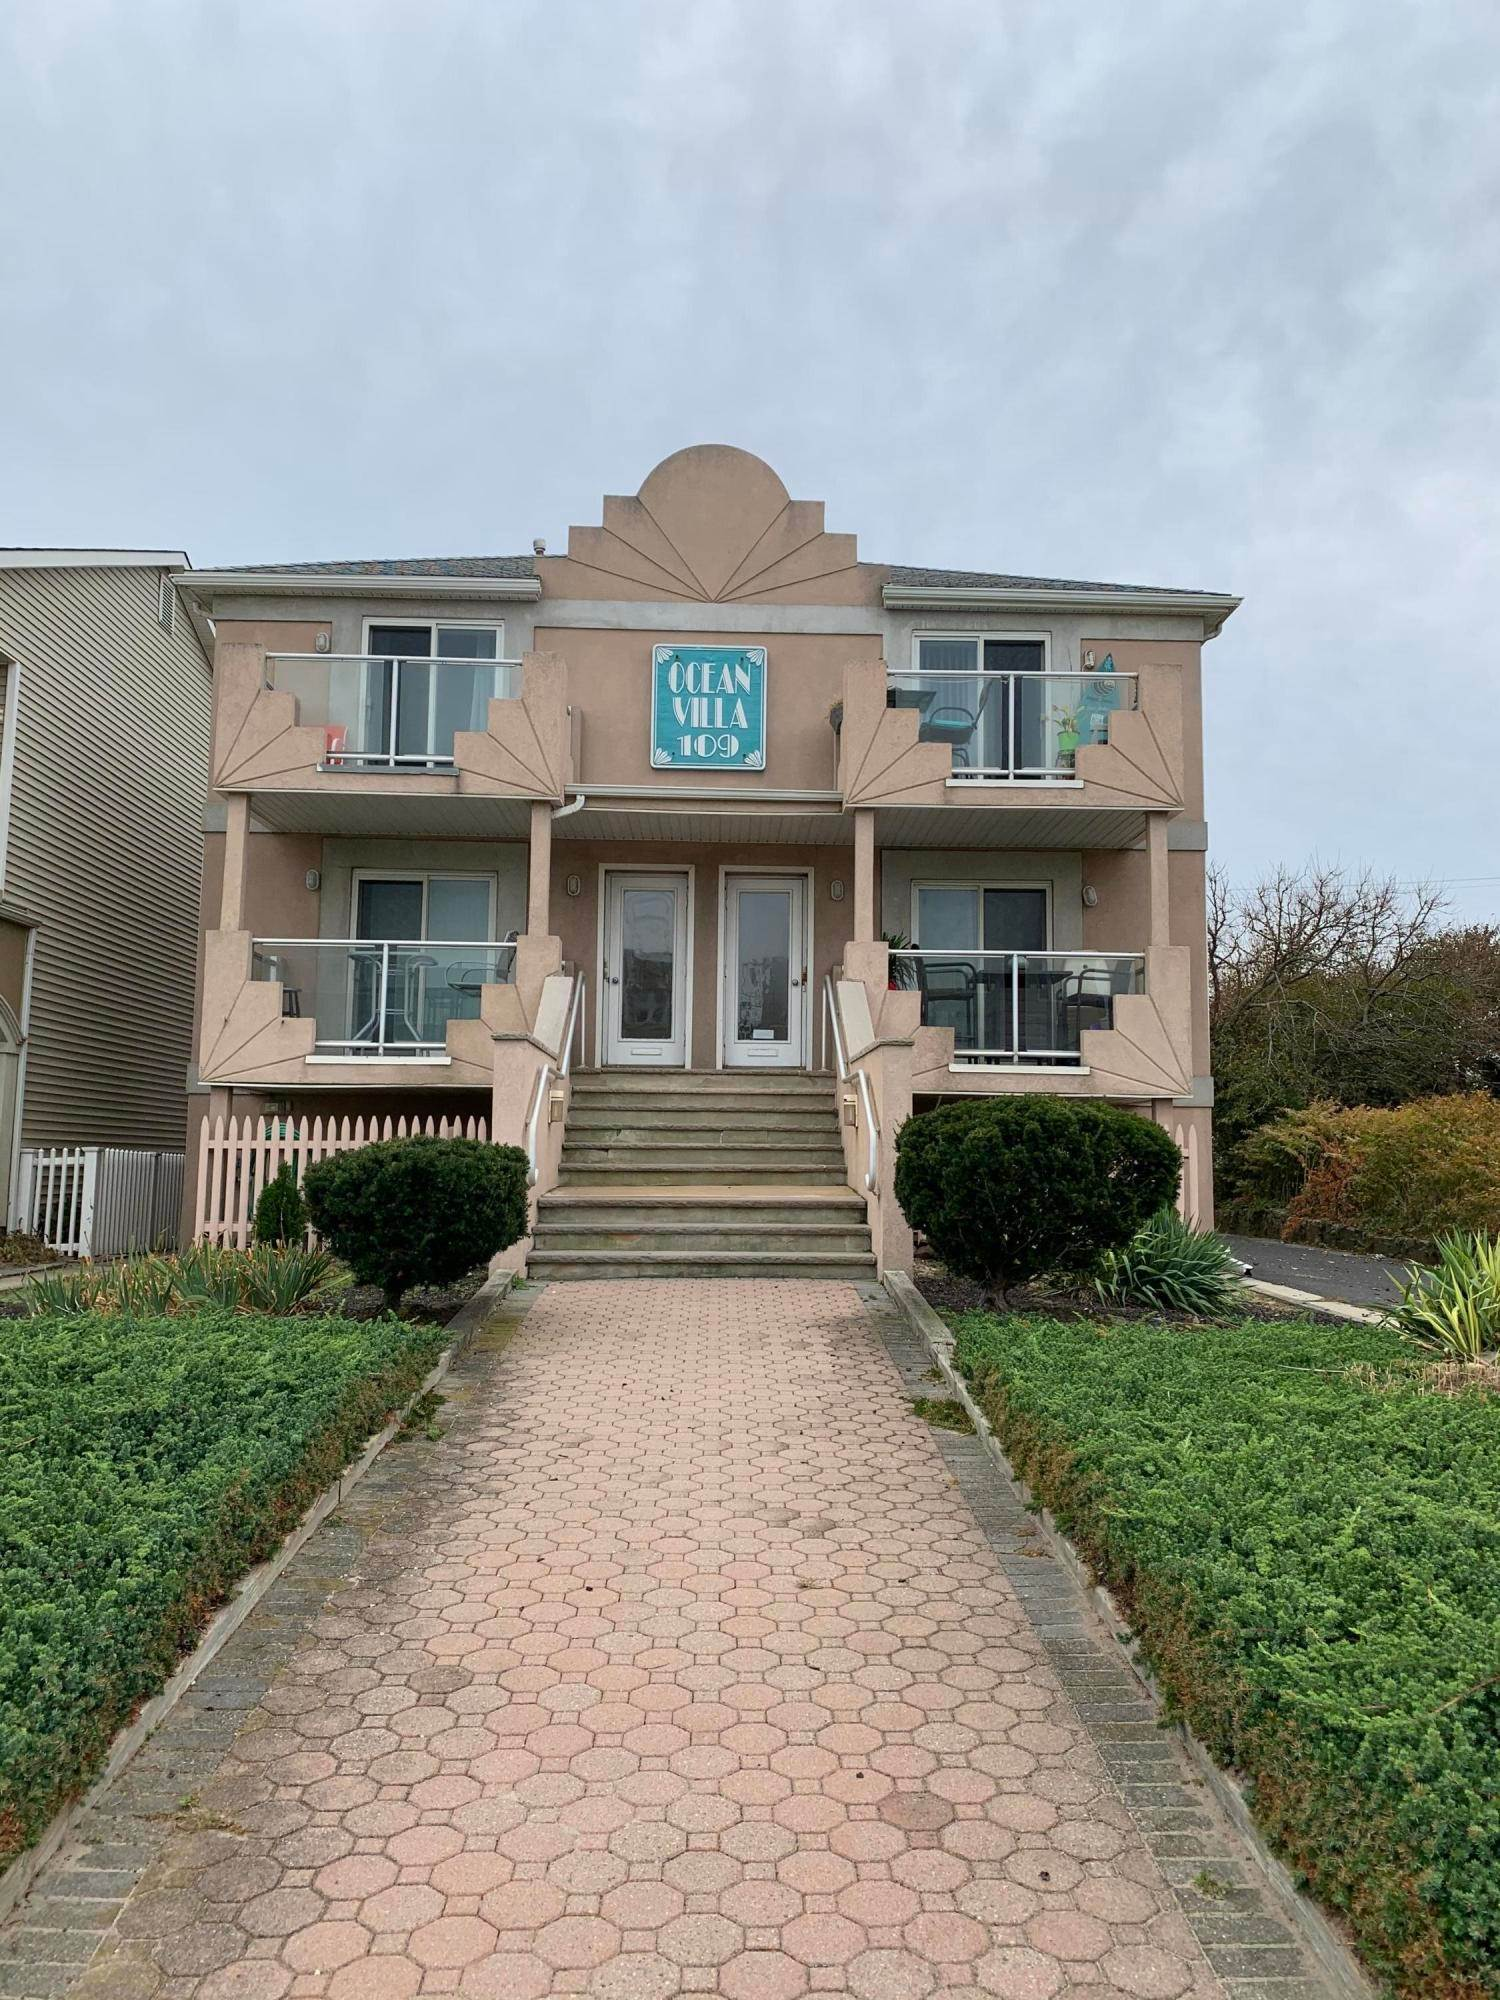 Apartments at 109 2nd Avenue Bradley Beach, New Jersey 07720 United States